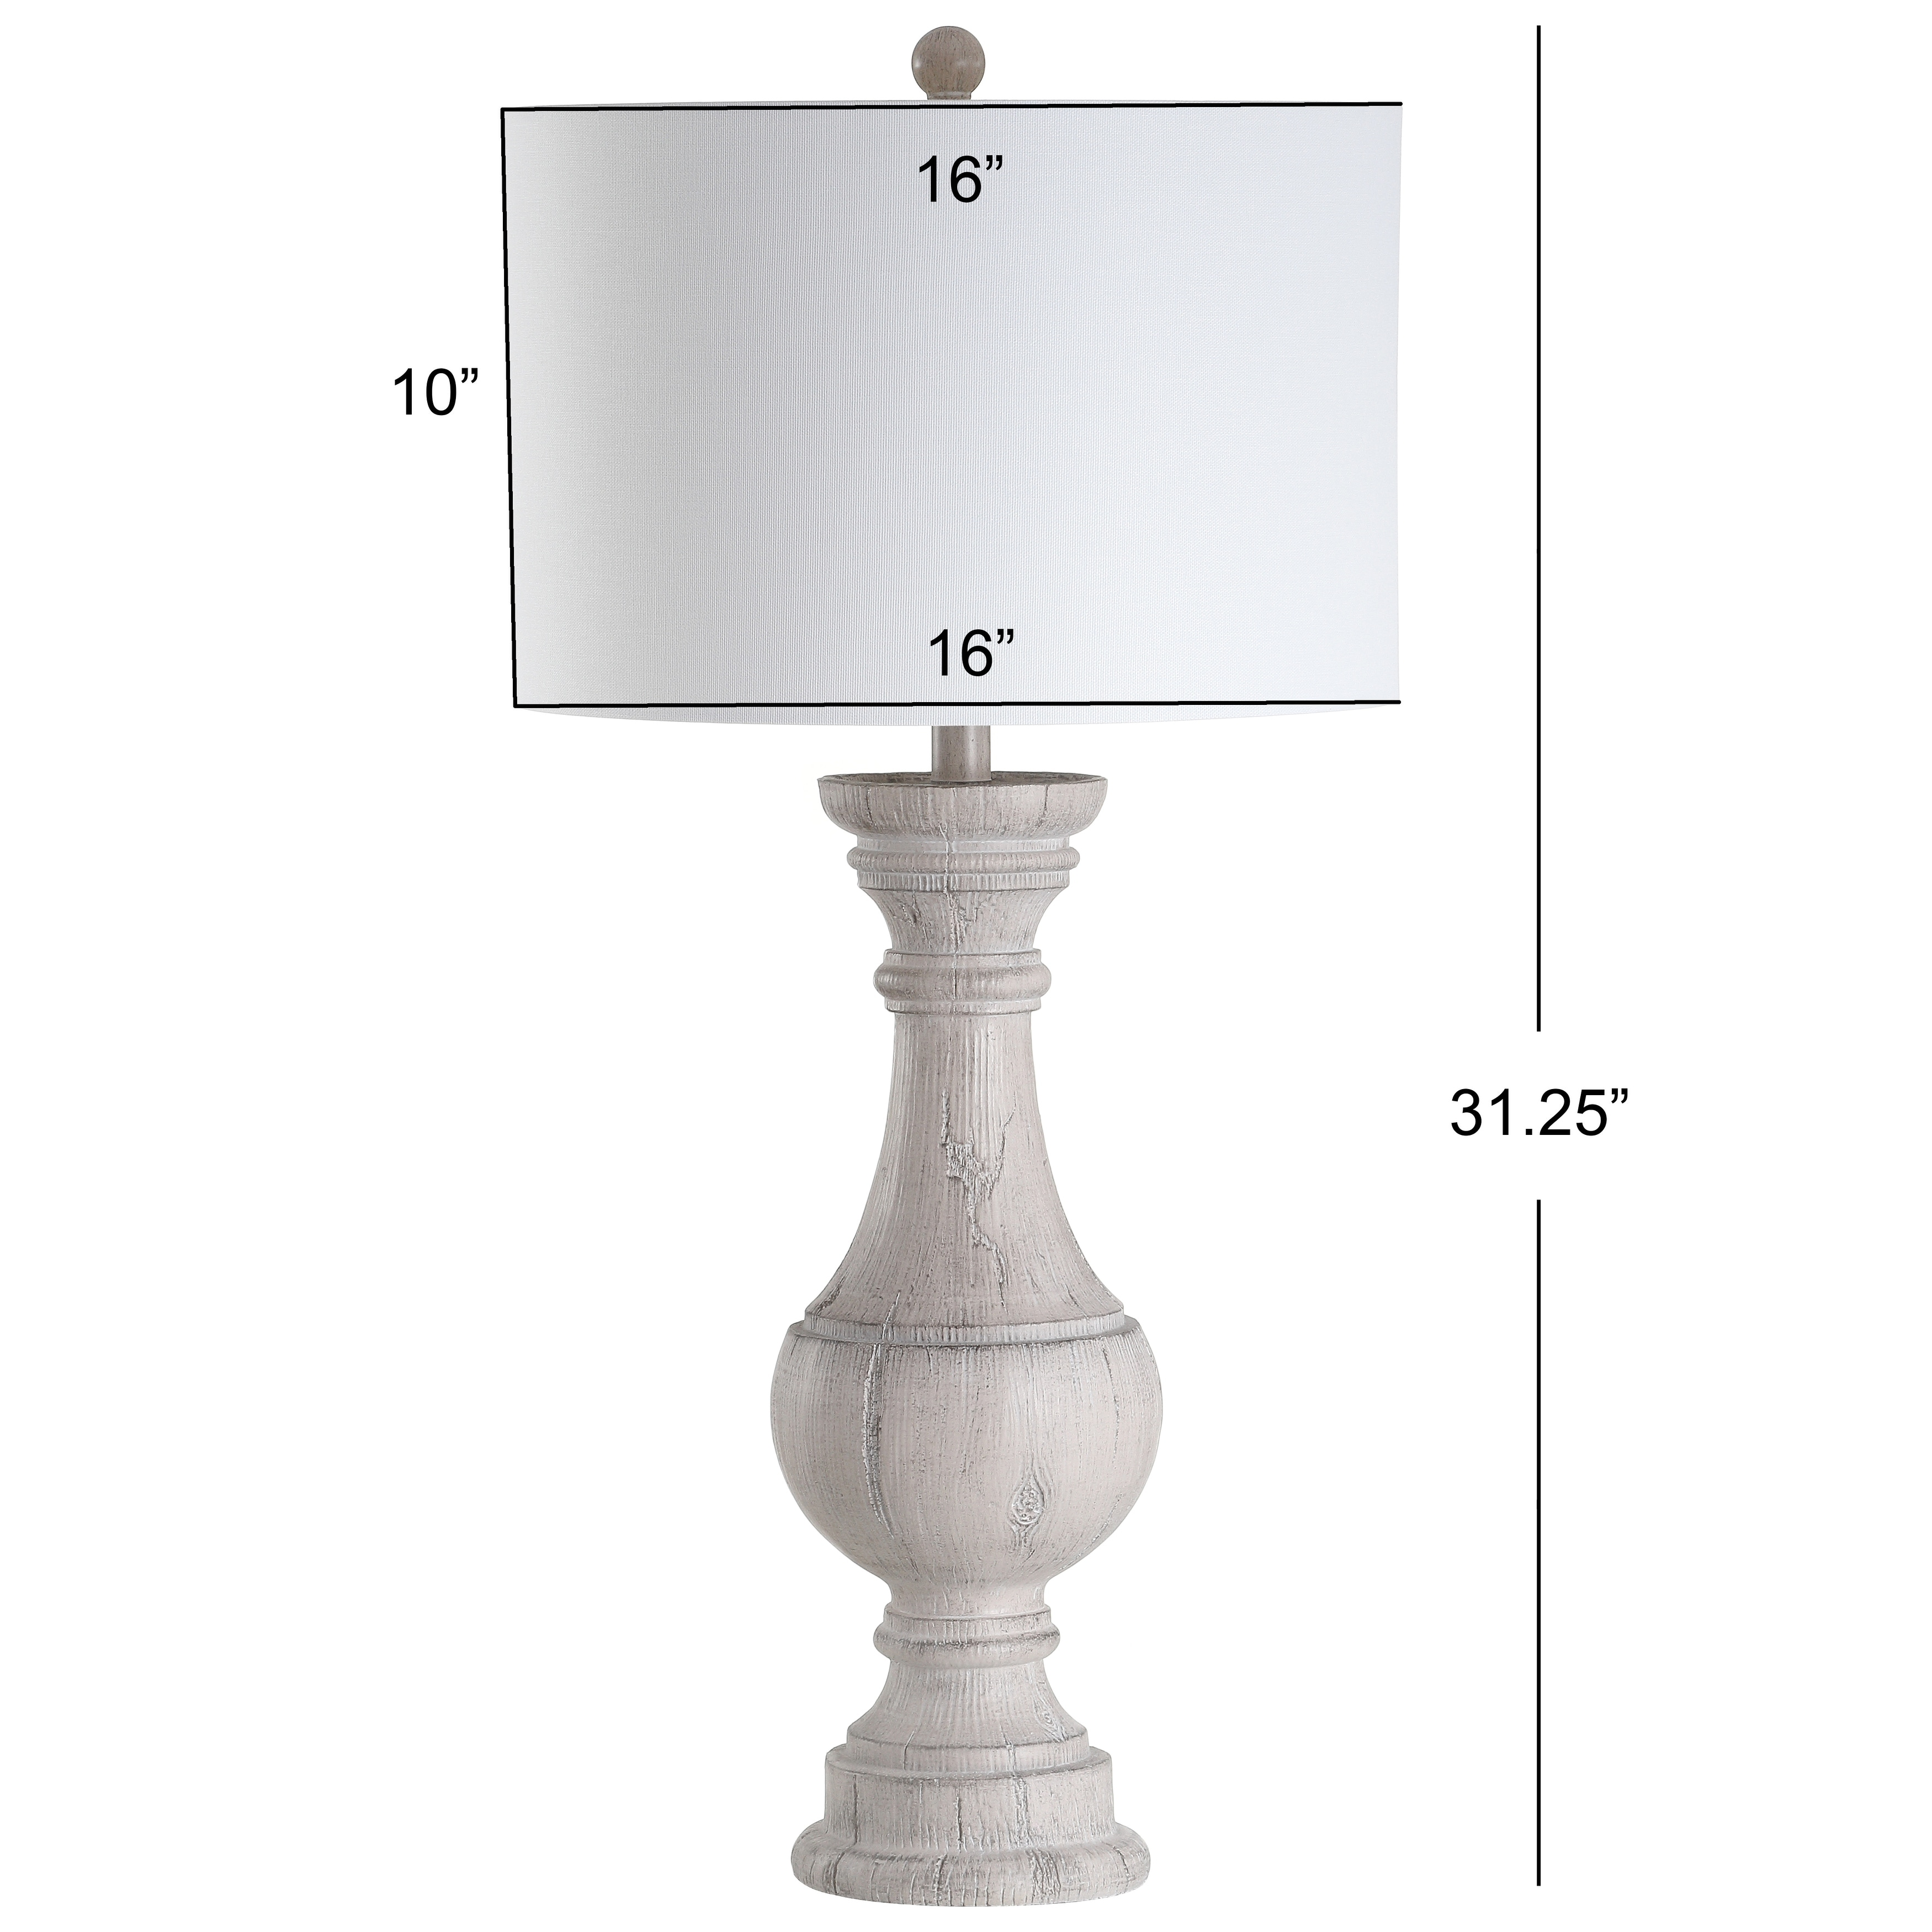 Safavieh Lighting 31 Inch Savion White Led Table Lamp Set Of 2 16 X16 X31 3 Overstock 27123754